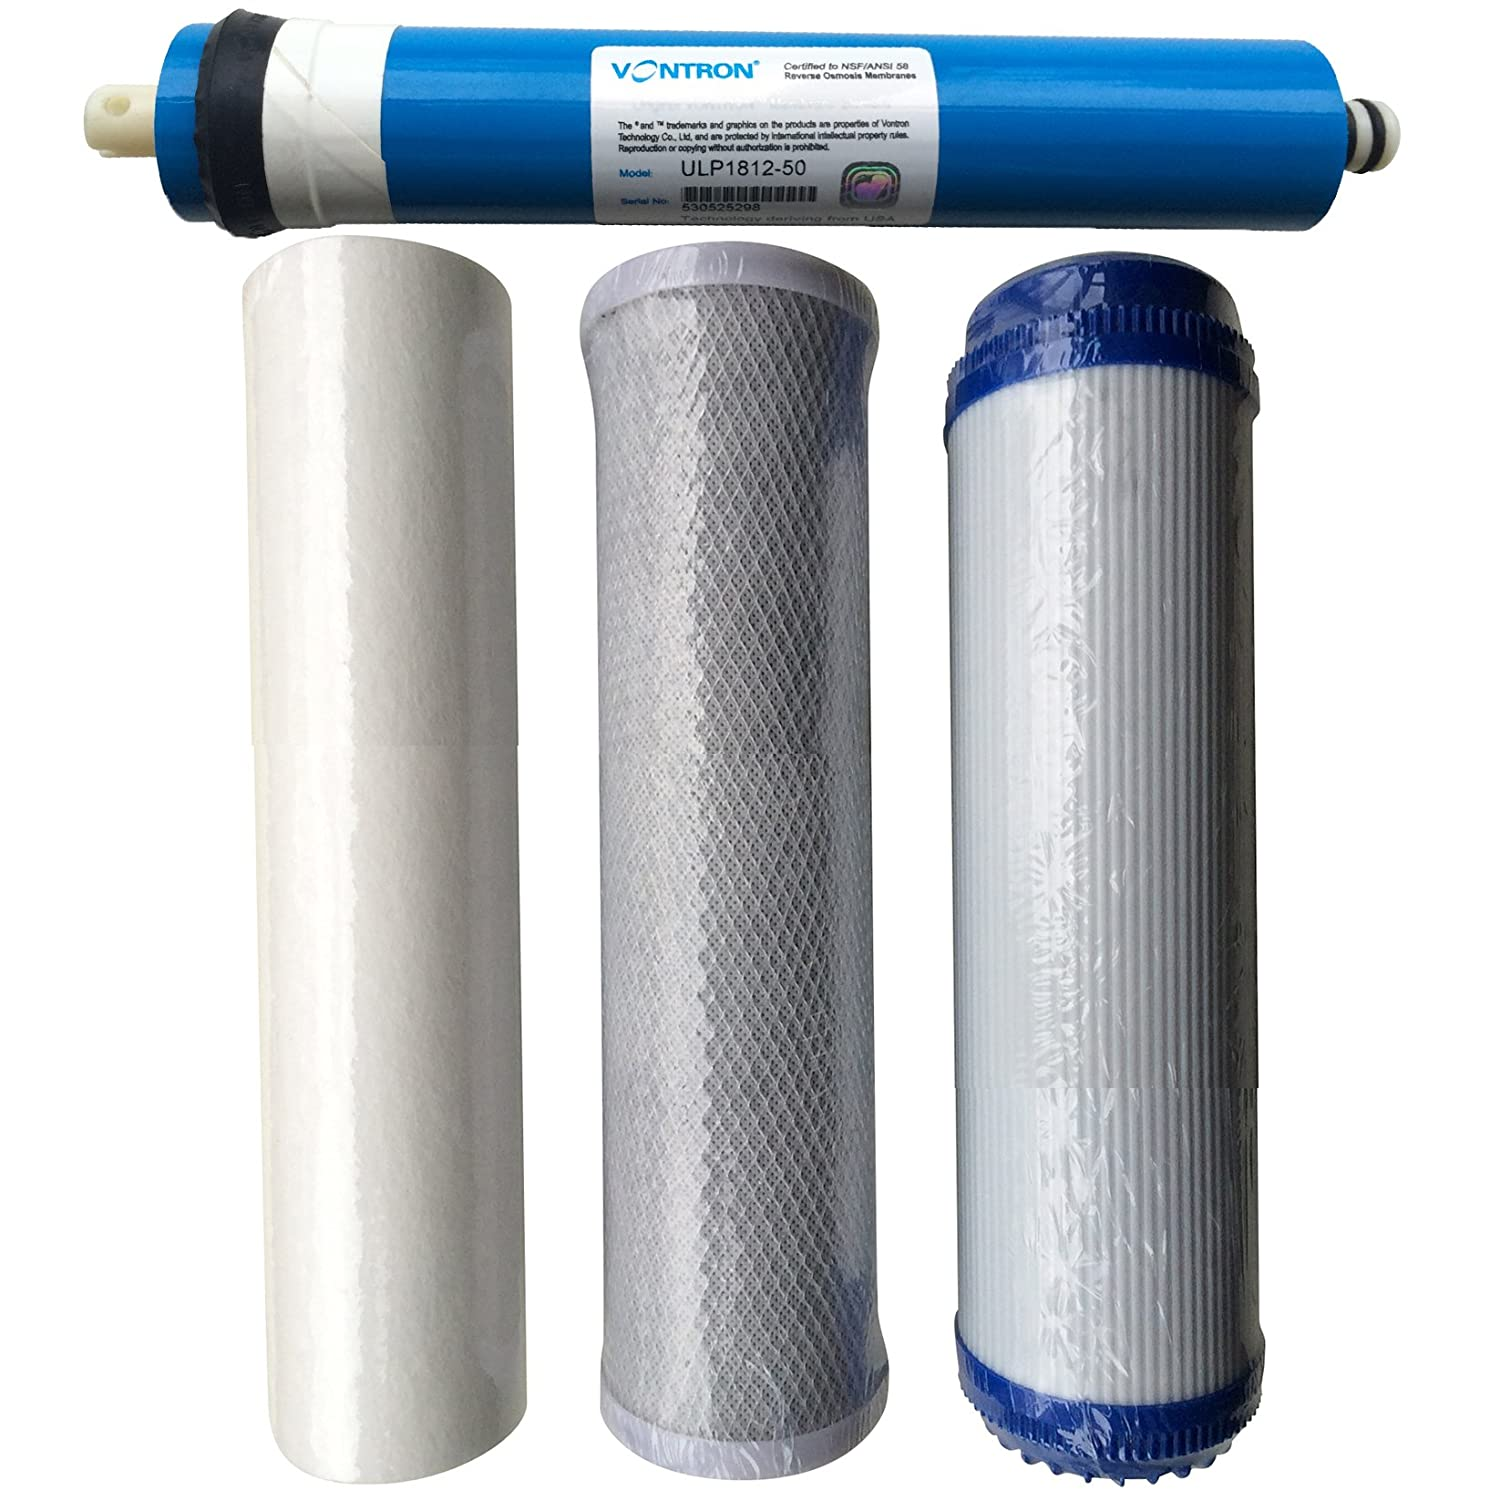 50gpd Membrane Finest-Filters Reverse Osmosis RO Unit Complete Replacement Pre Filters Including Membrane (4 Filters) (50Gpd Membrane)